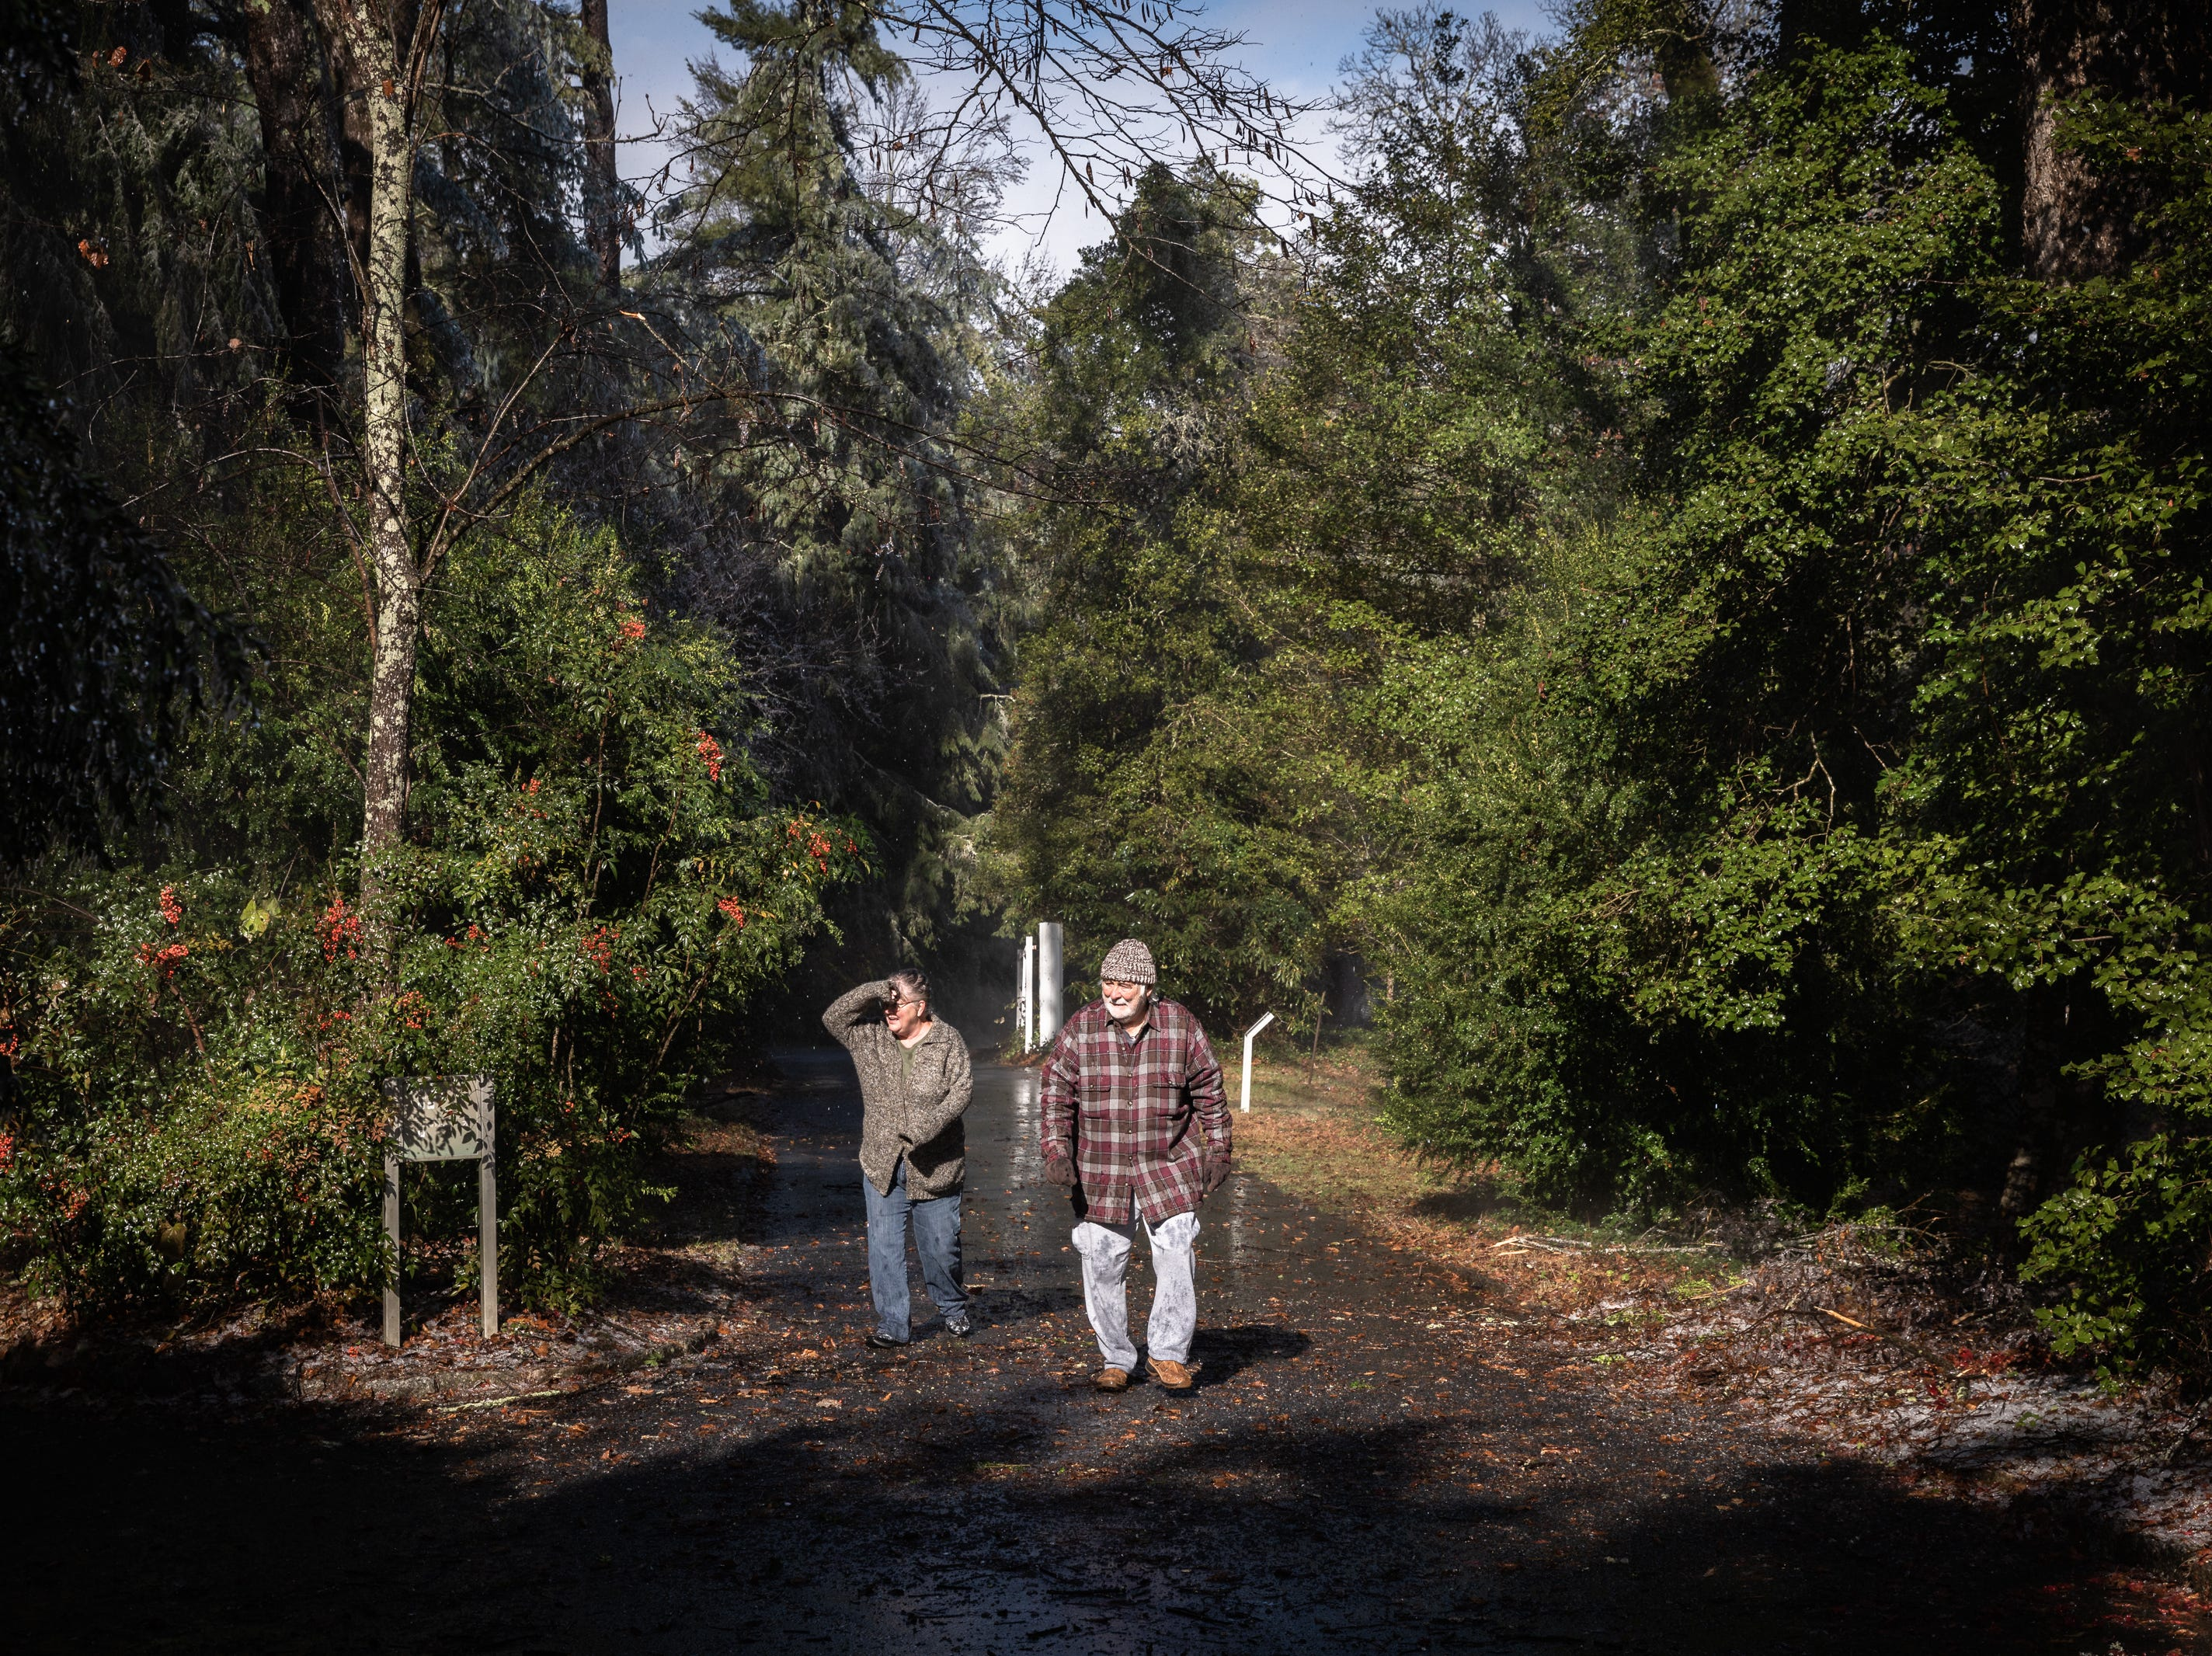 Laura Roscoe and Woody Roscoe, of Hendersonville, walk up the driveway to the Carl Sandburg home in Flat Rock where the park celebrated its 50th anniversary Nov. 24, 2018, with their Christmas at Connemara event featuring live music, storytellers and tours of the home.